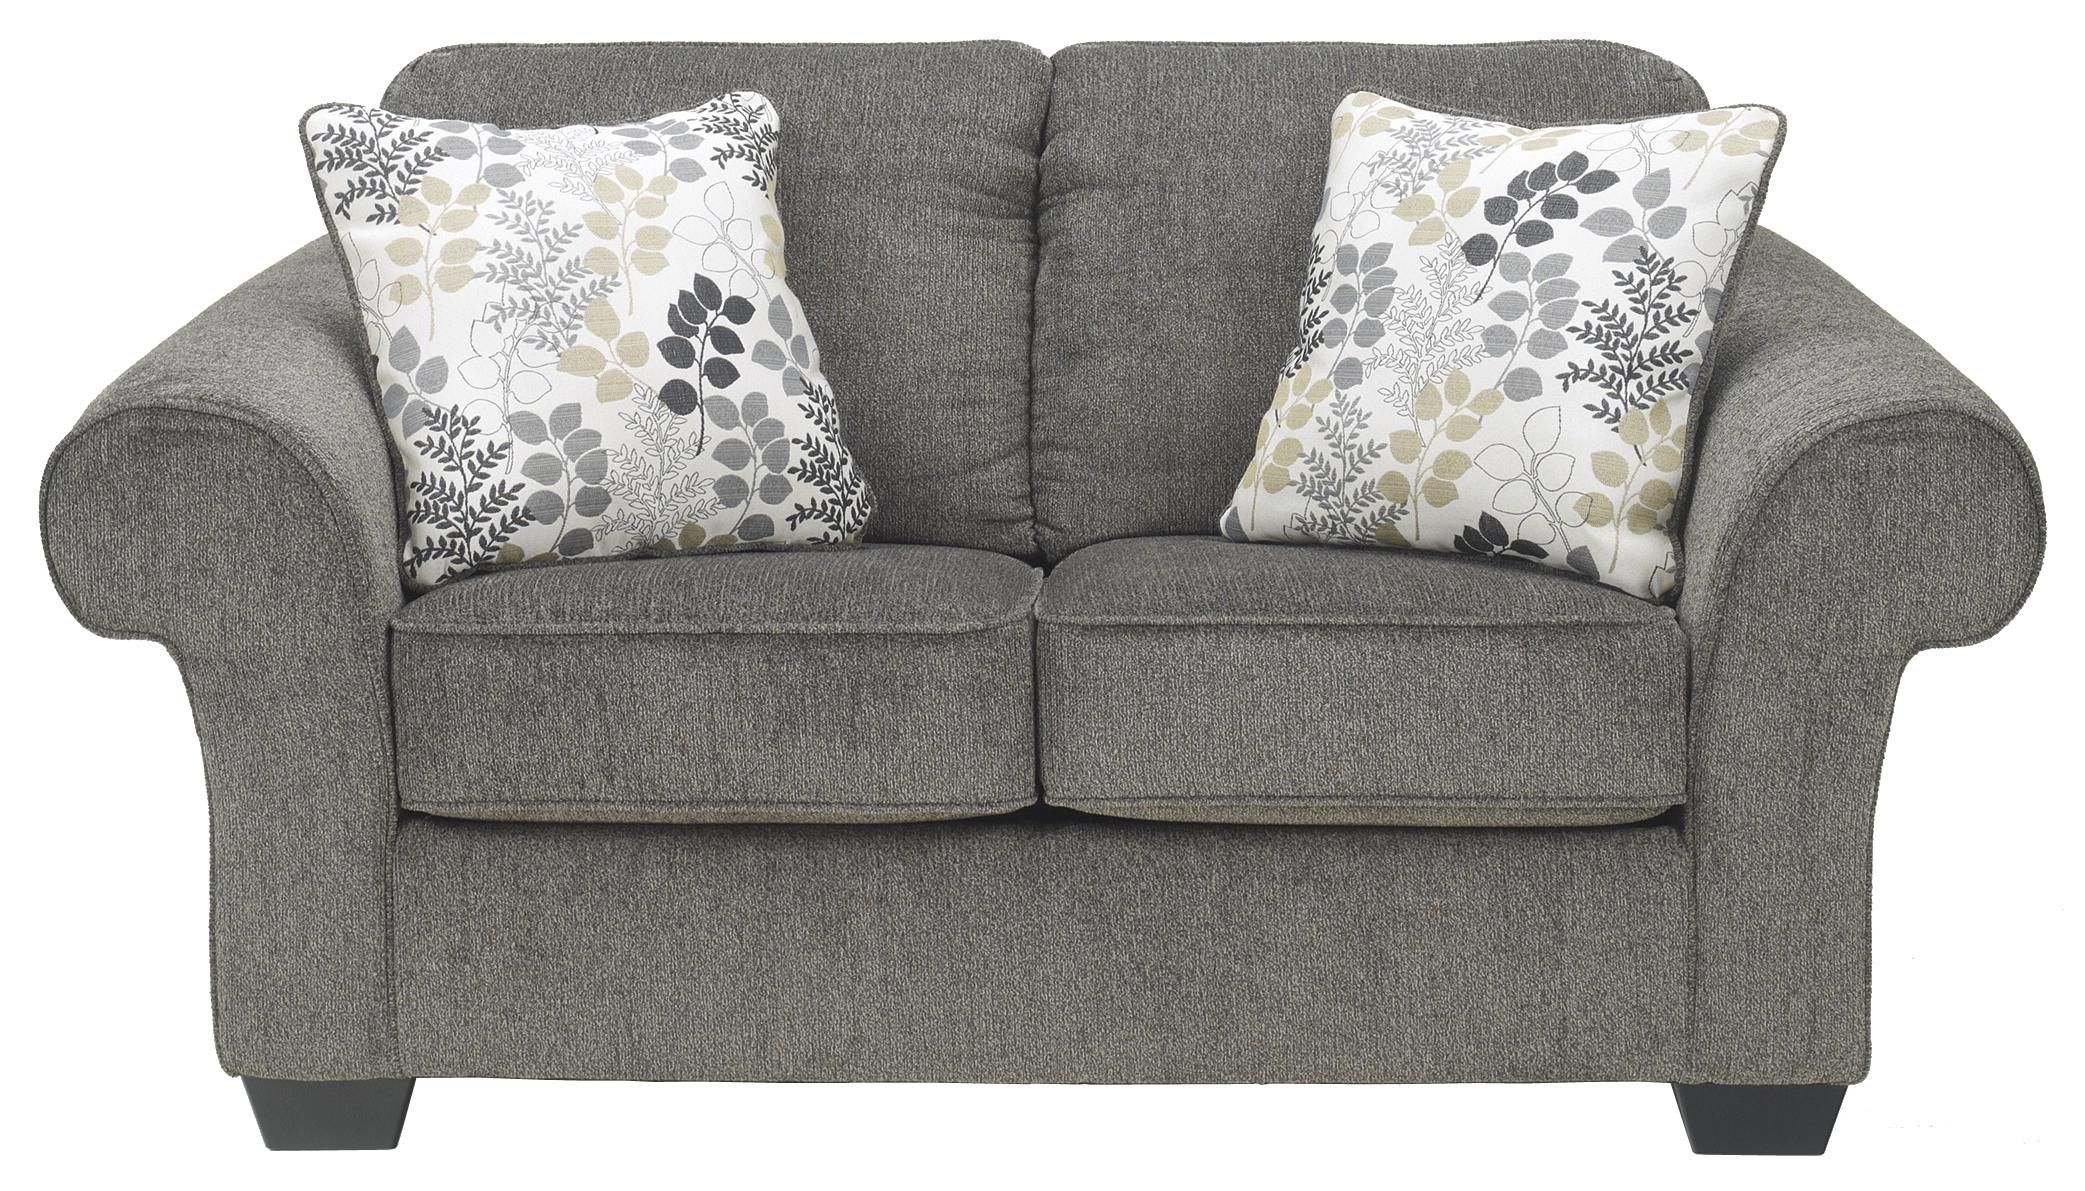 Makonnen Charcoal Loveseat By Signature Design By Ashley